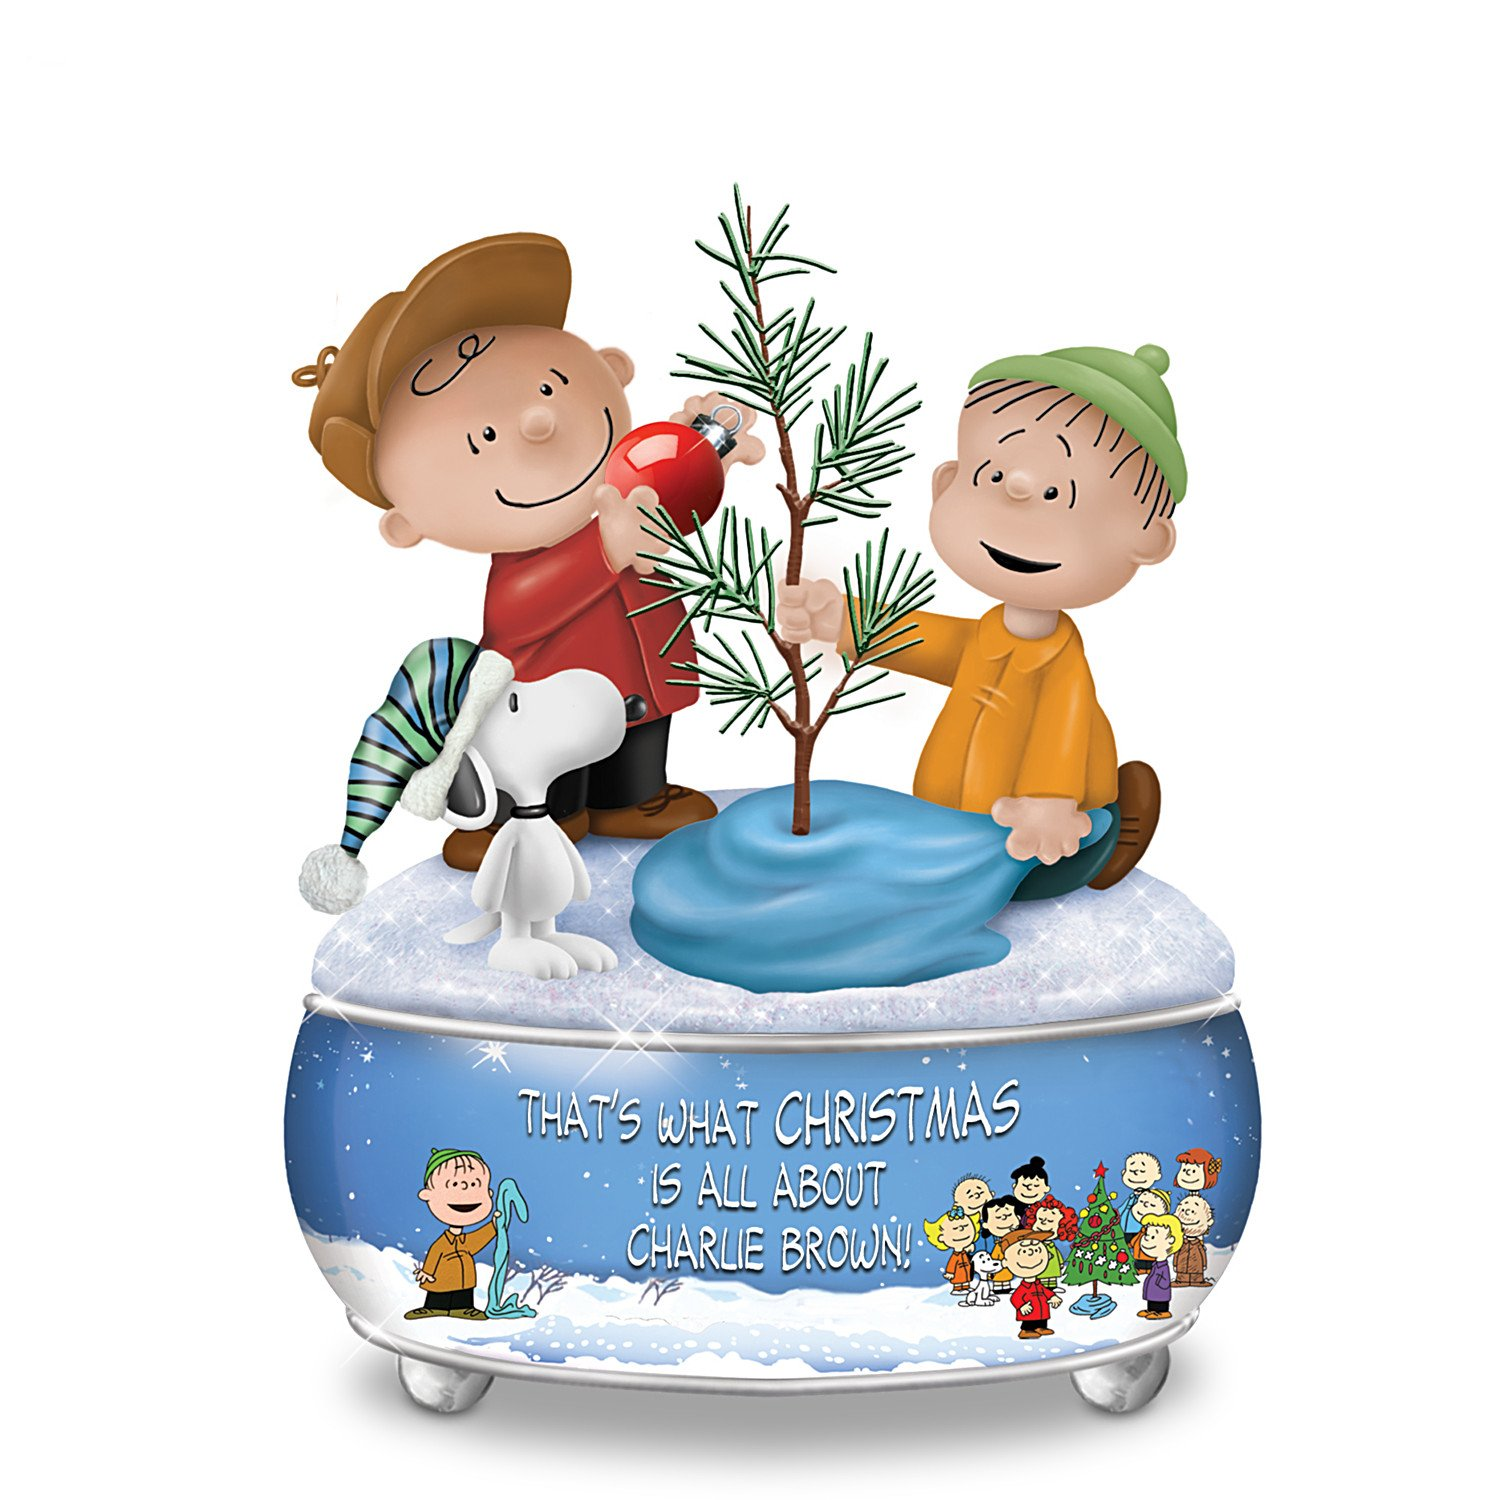 Snoopy Christmas Tree Topper: Luxury Charlie Brown Christmas Images And Quotes